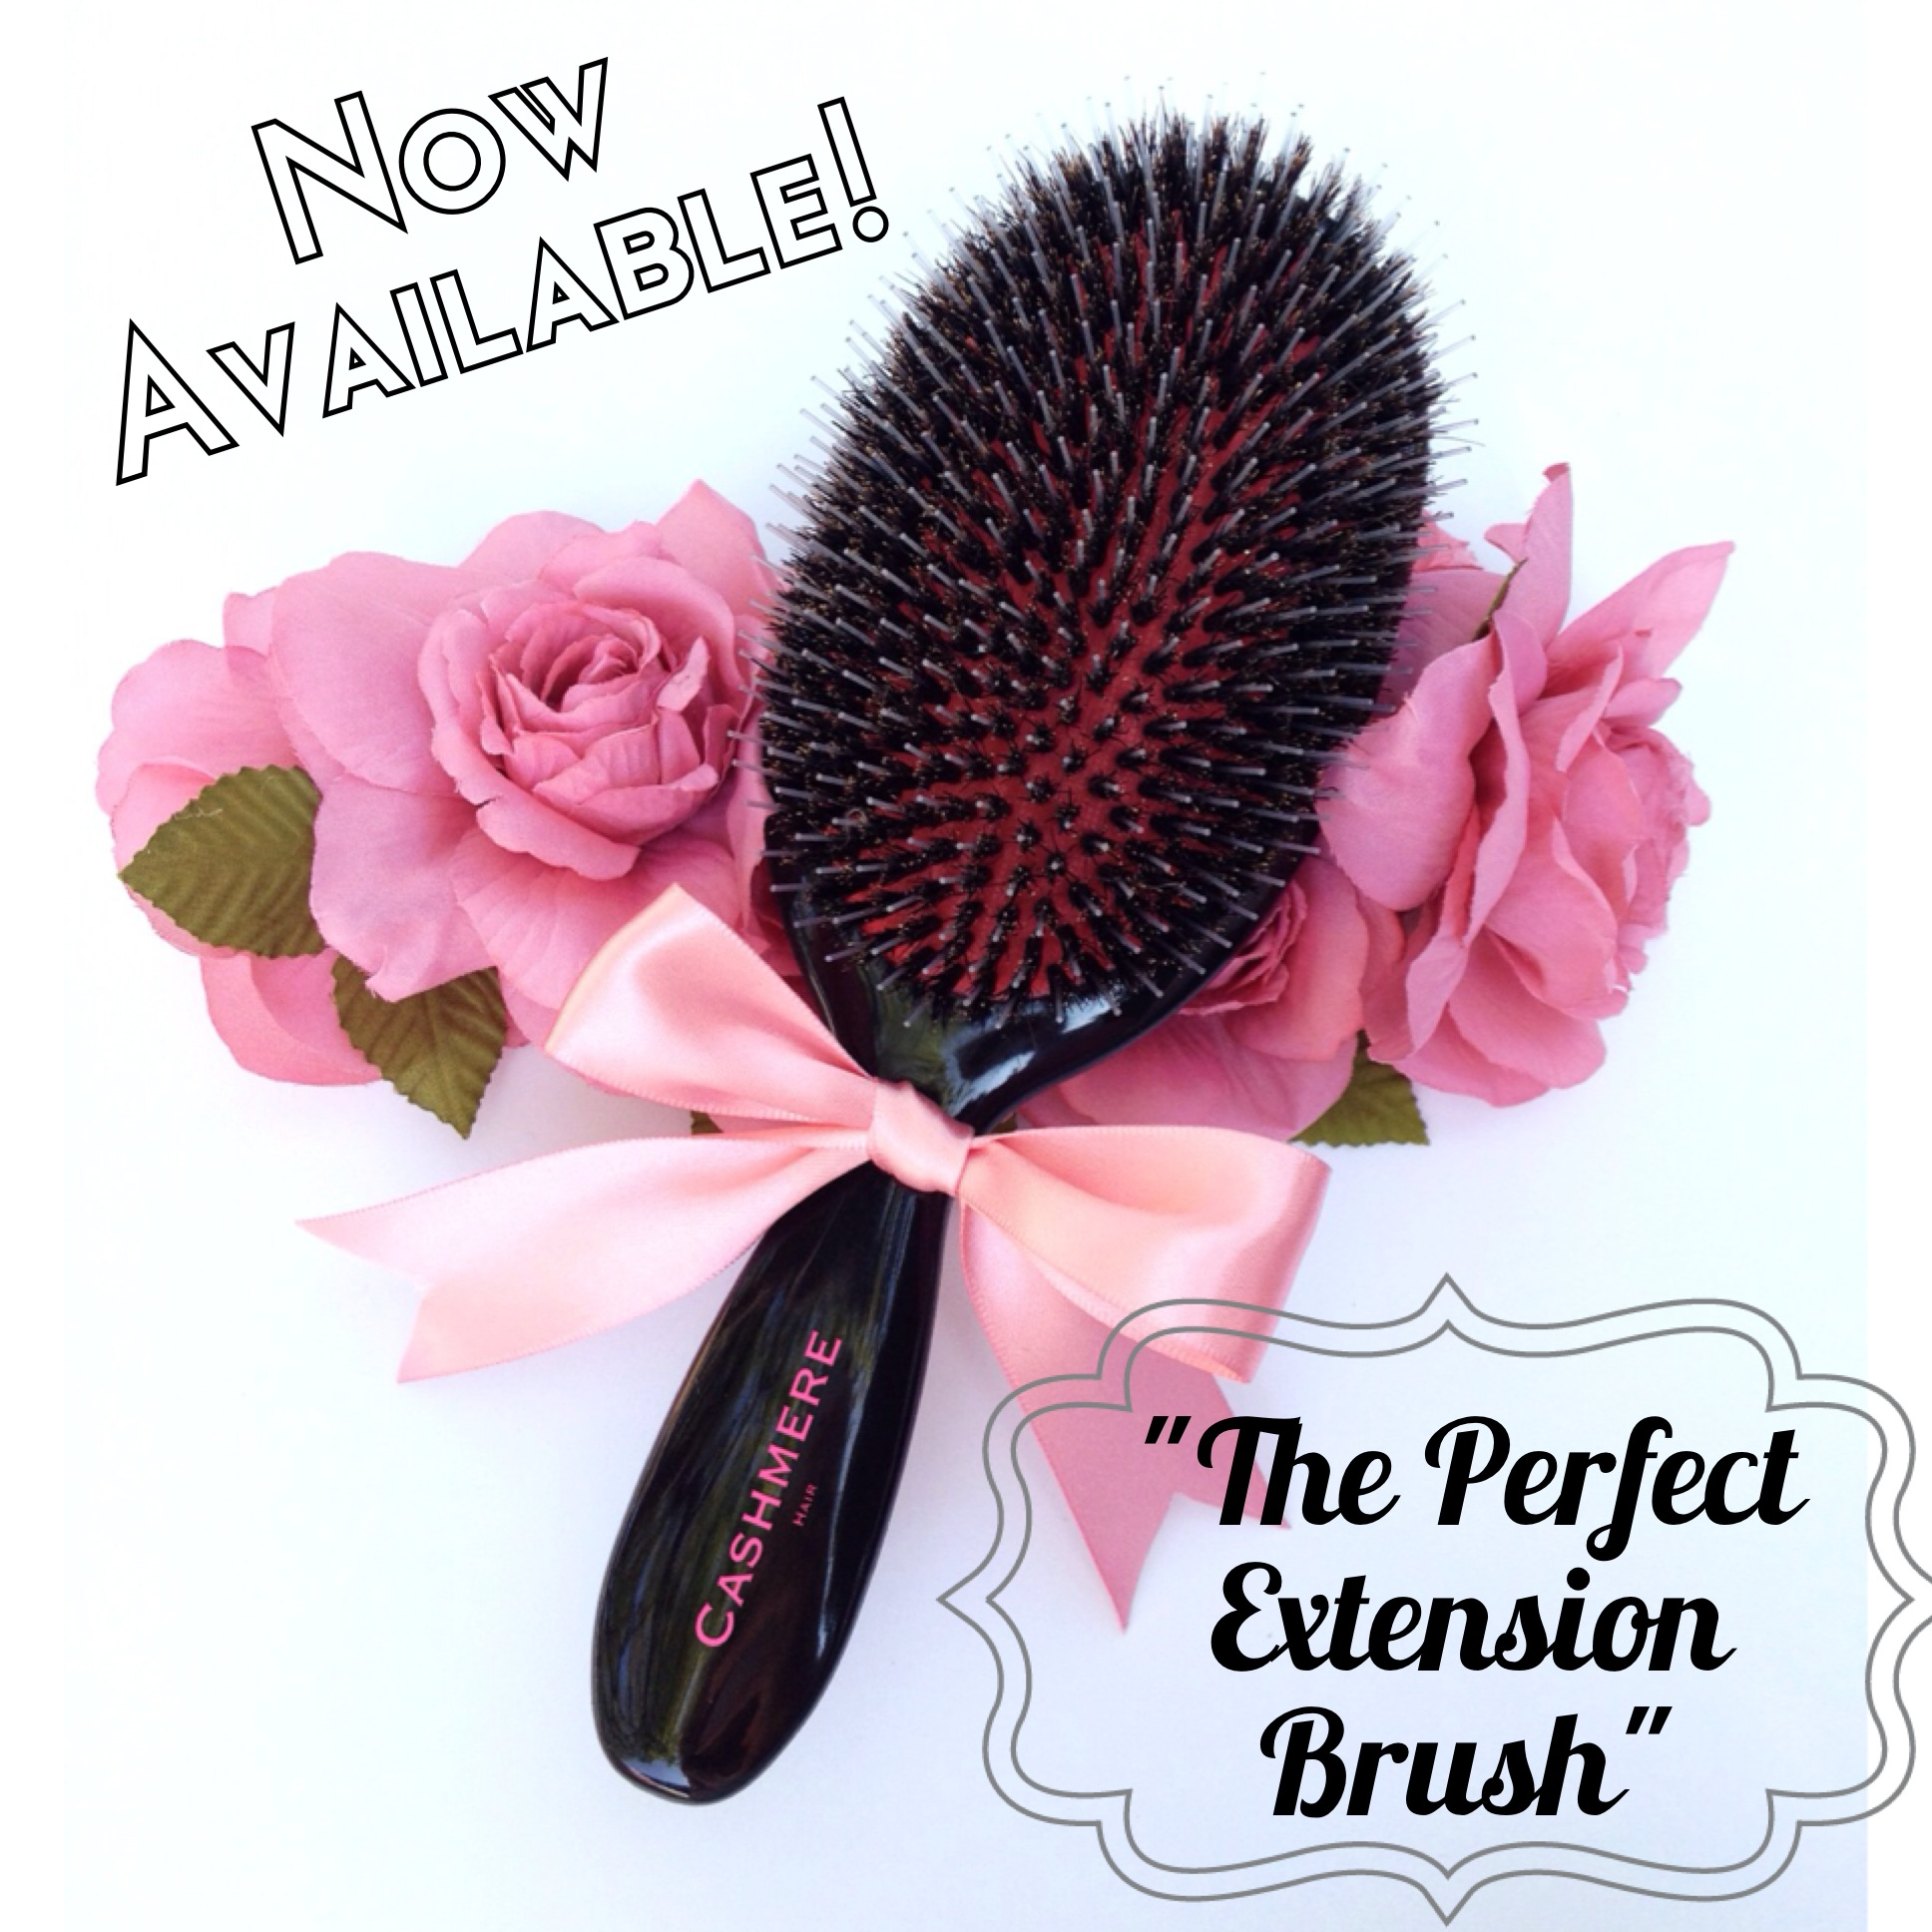 The New CASHMERE HAIR BRUSH!!